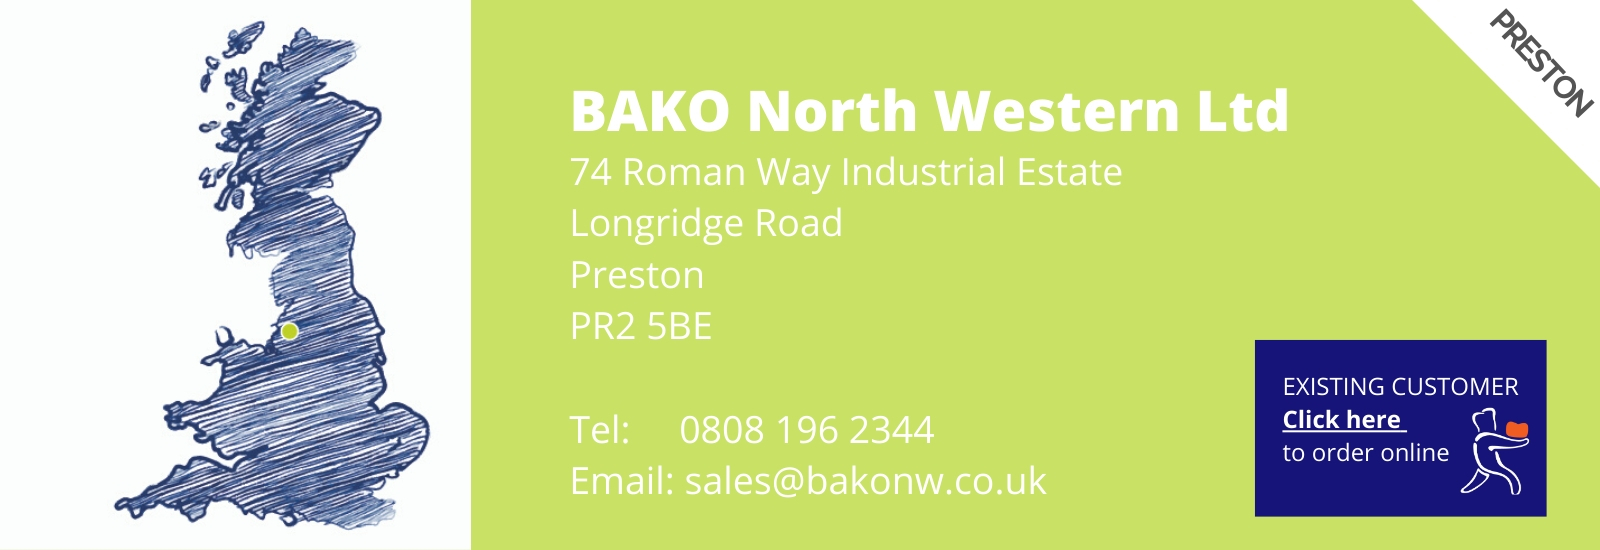 How to order BAKO North Western